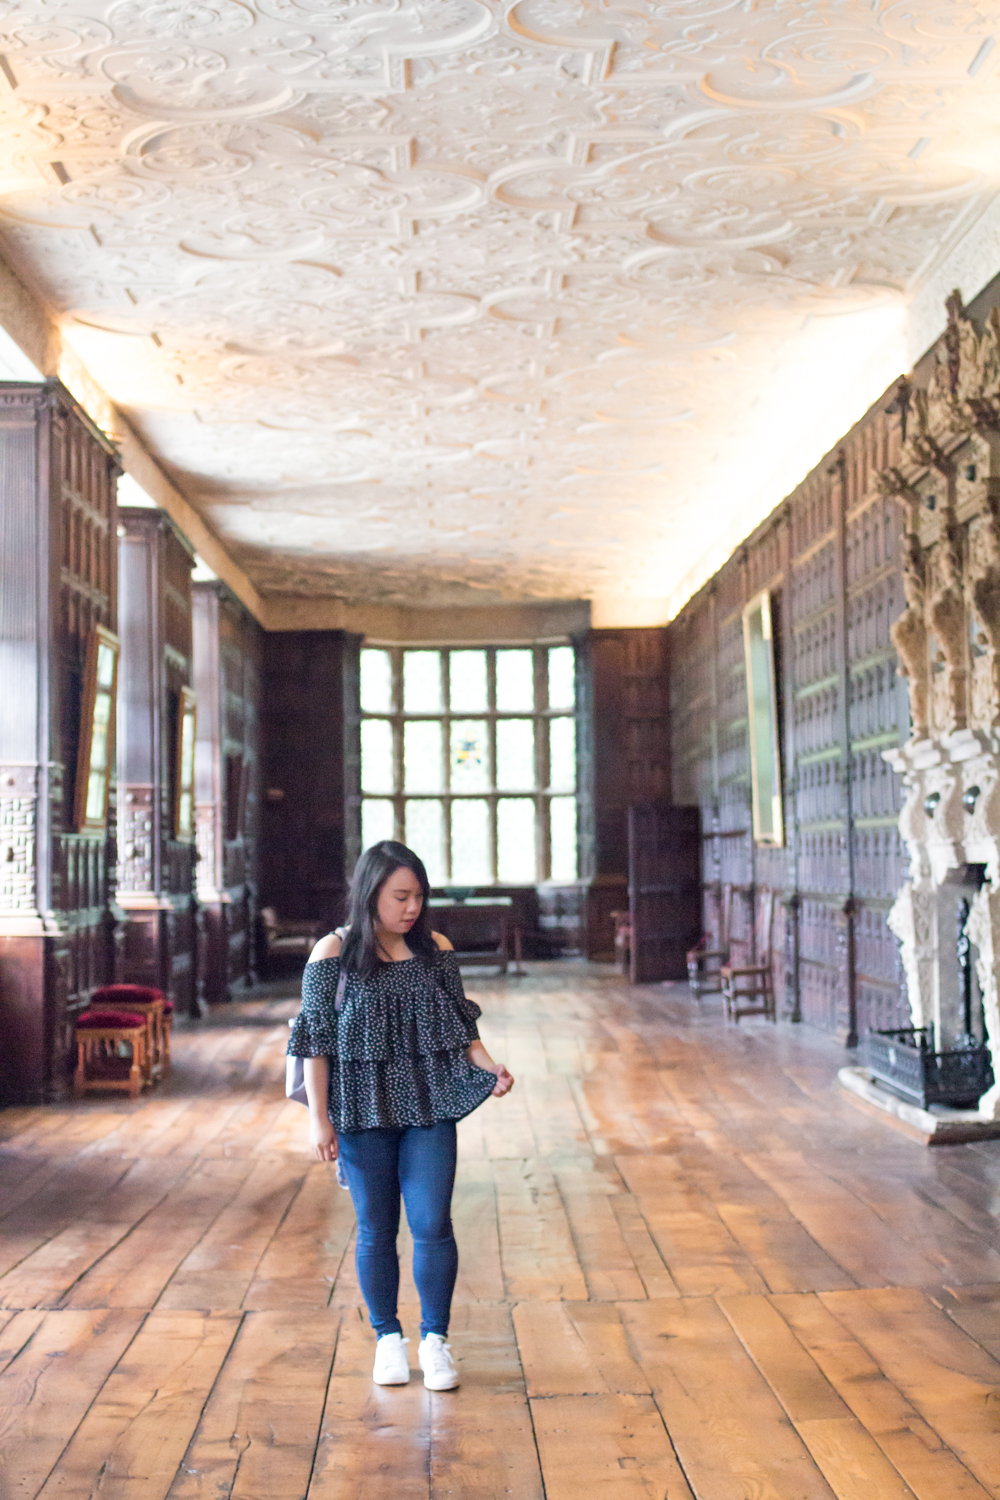 Aston Hall Birmingham Wood paneled room